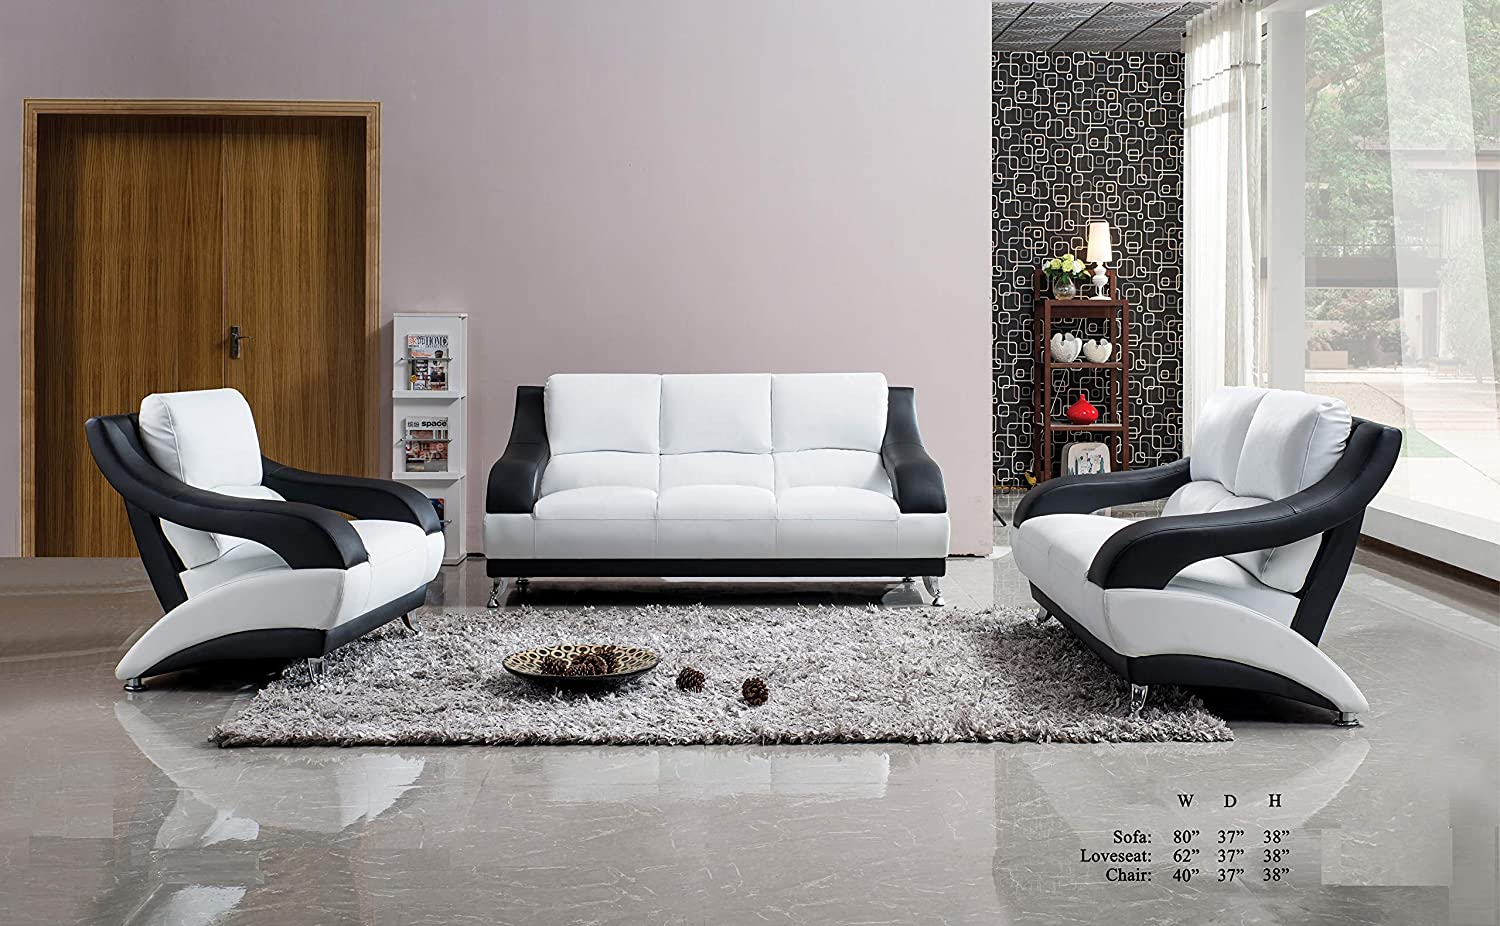 Charmant Amazon.com: Esofastore Classic Unique Modern Vance Bonded Leather  White/Black 3pc Sofa Set Sofa Loveseat Chair Living Room Furniture: Kitchen  U0026 Dining